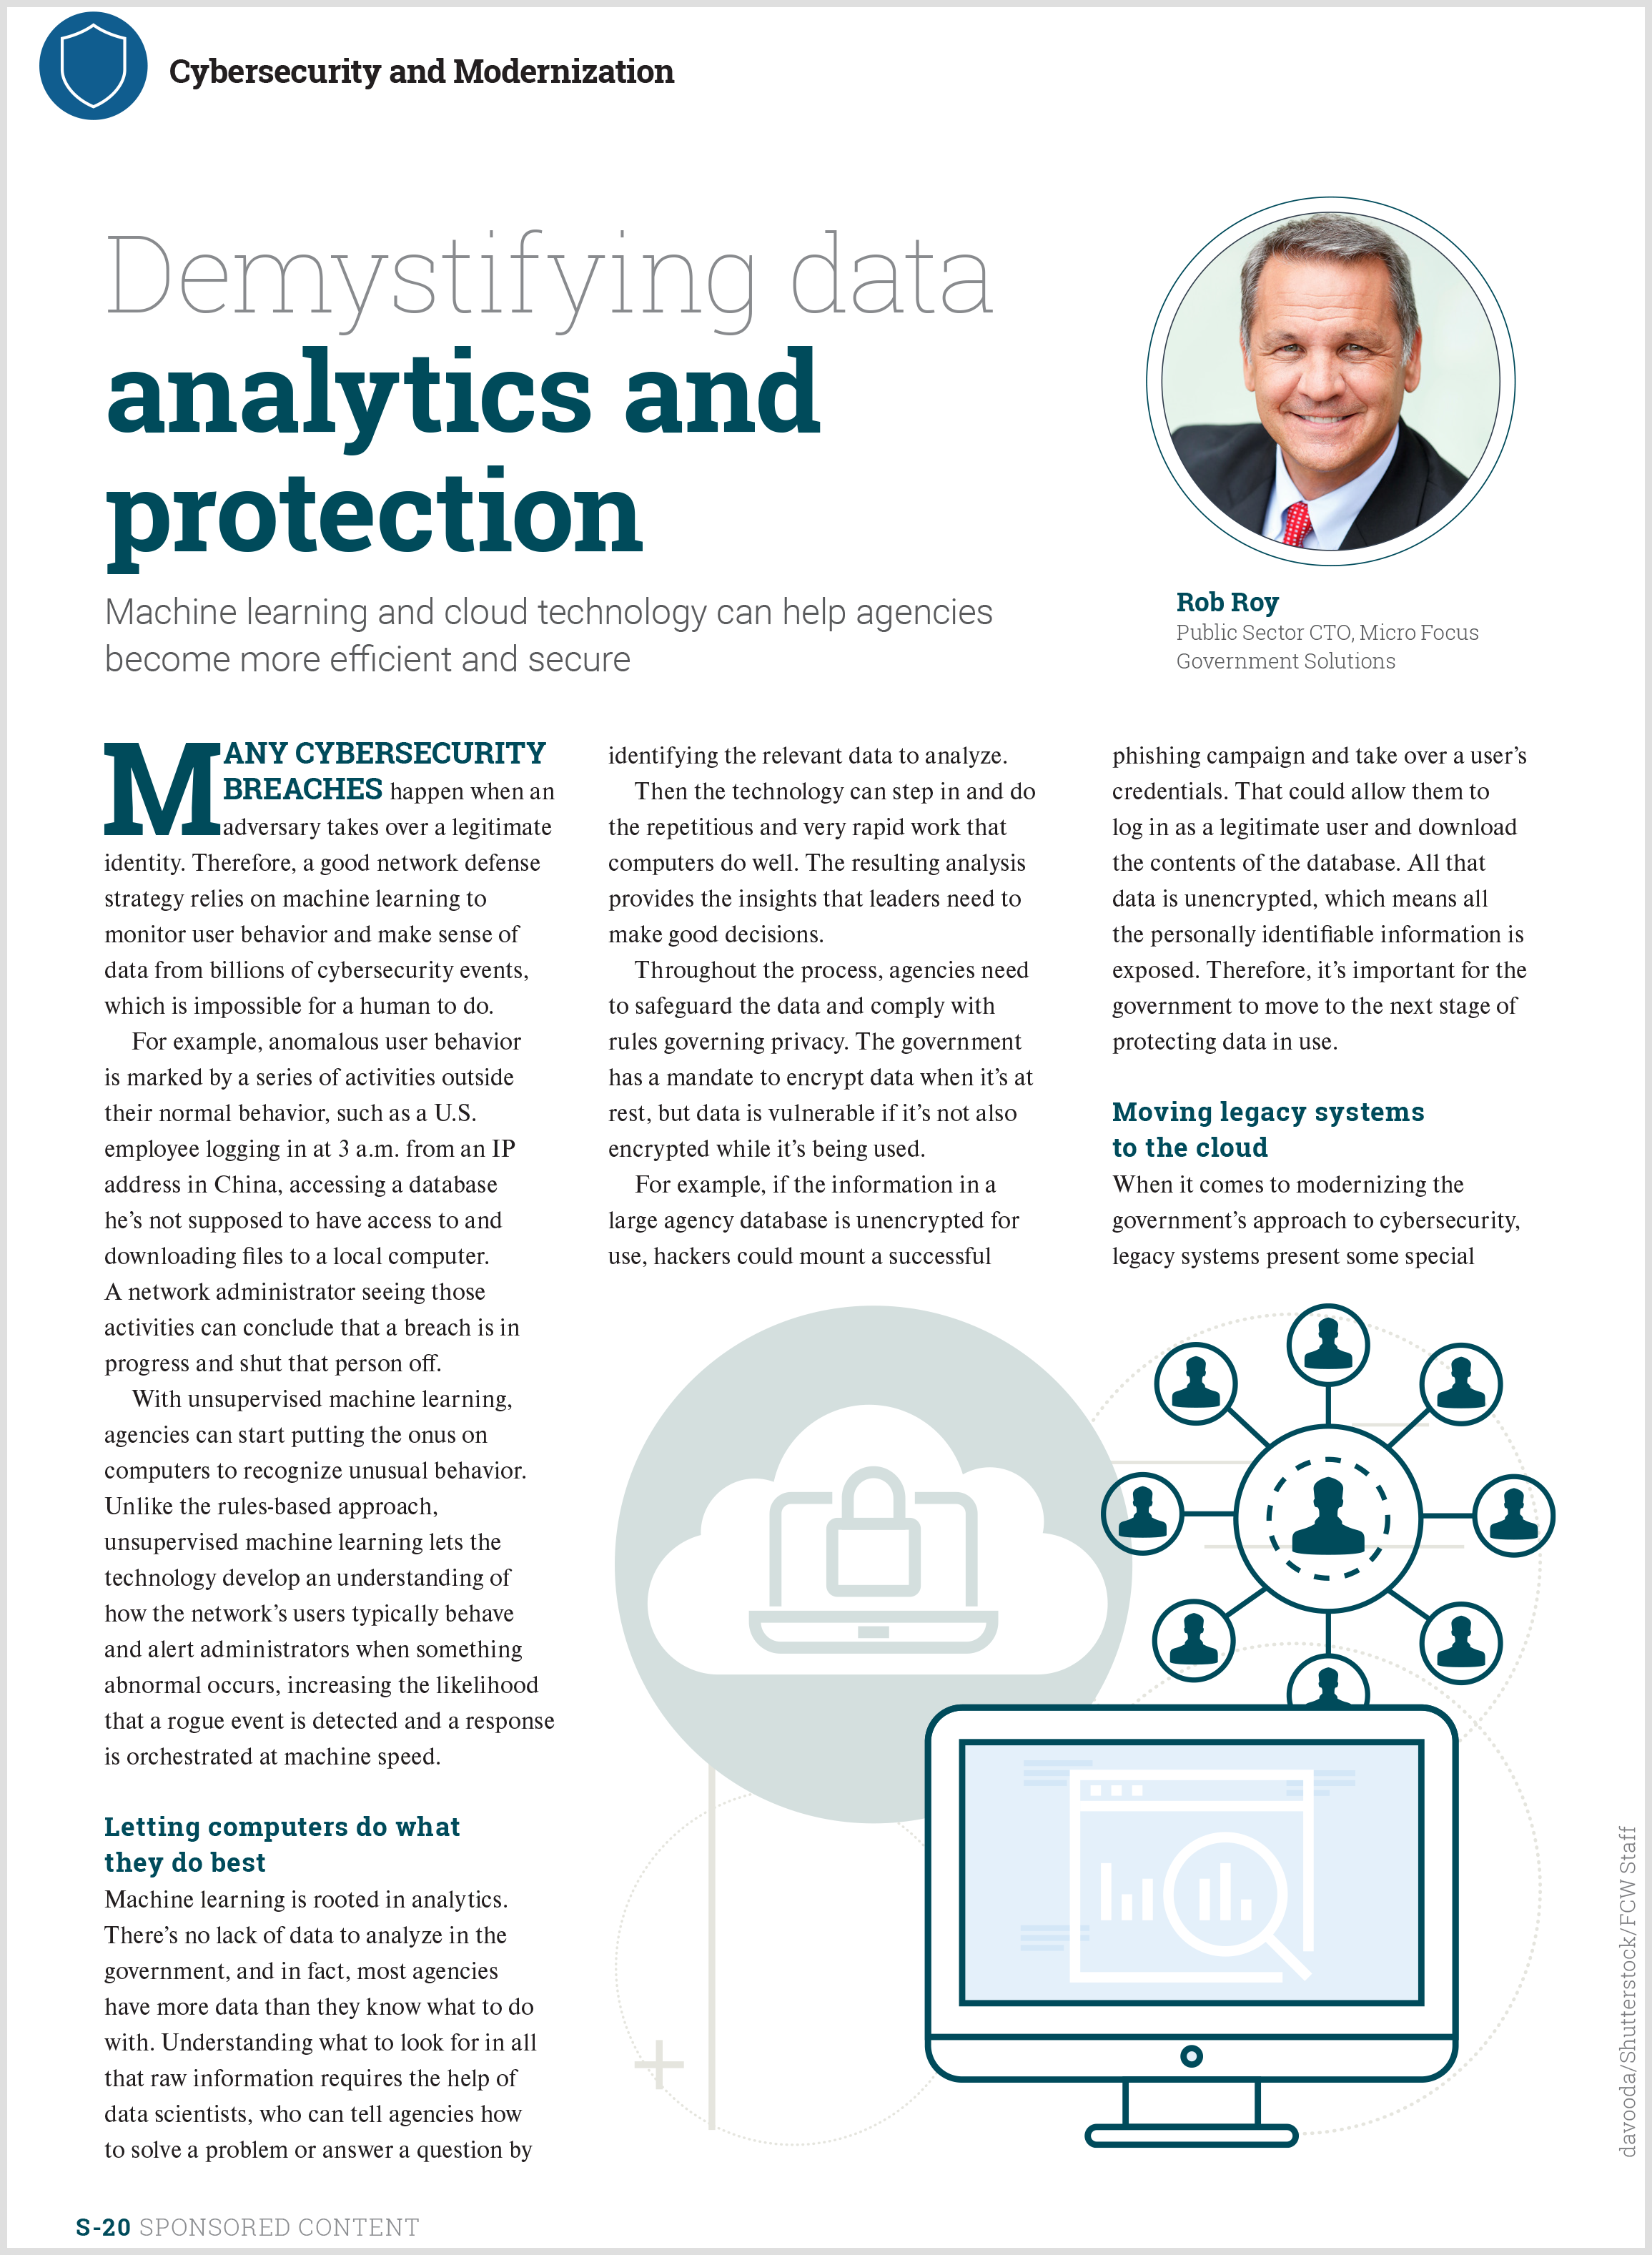 Demystifying Data Analytics and Protection preview image